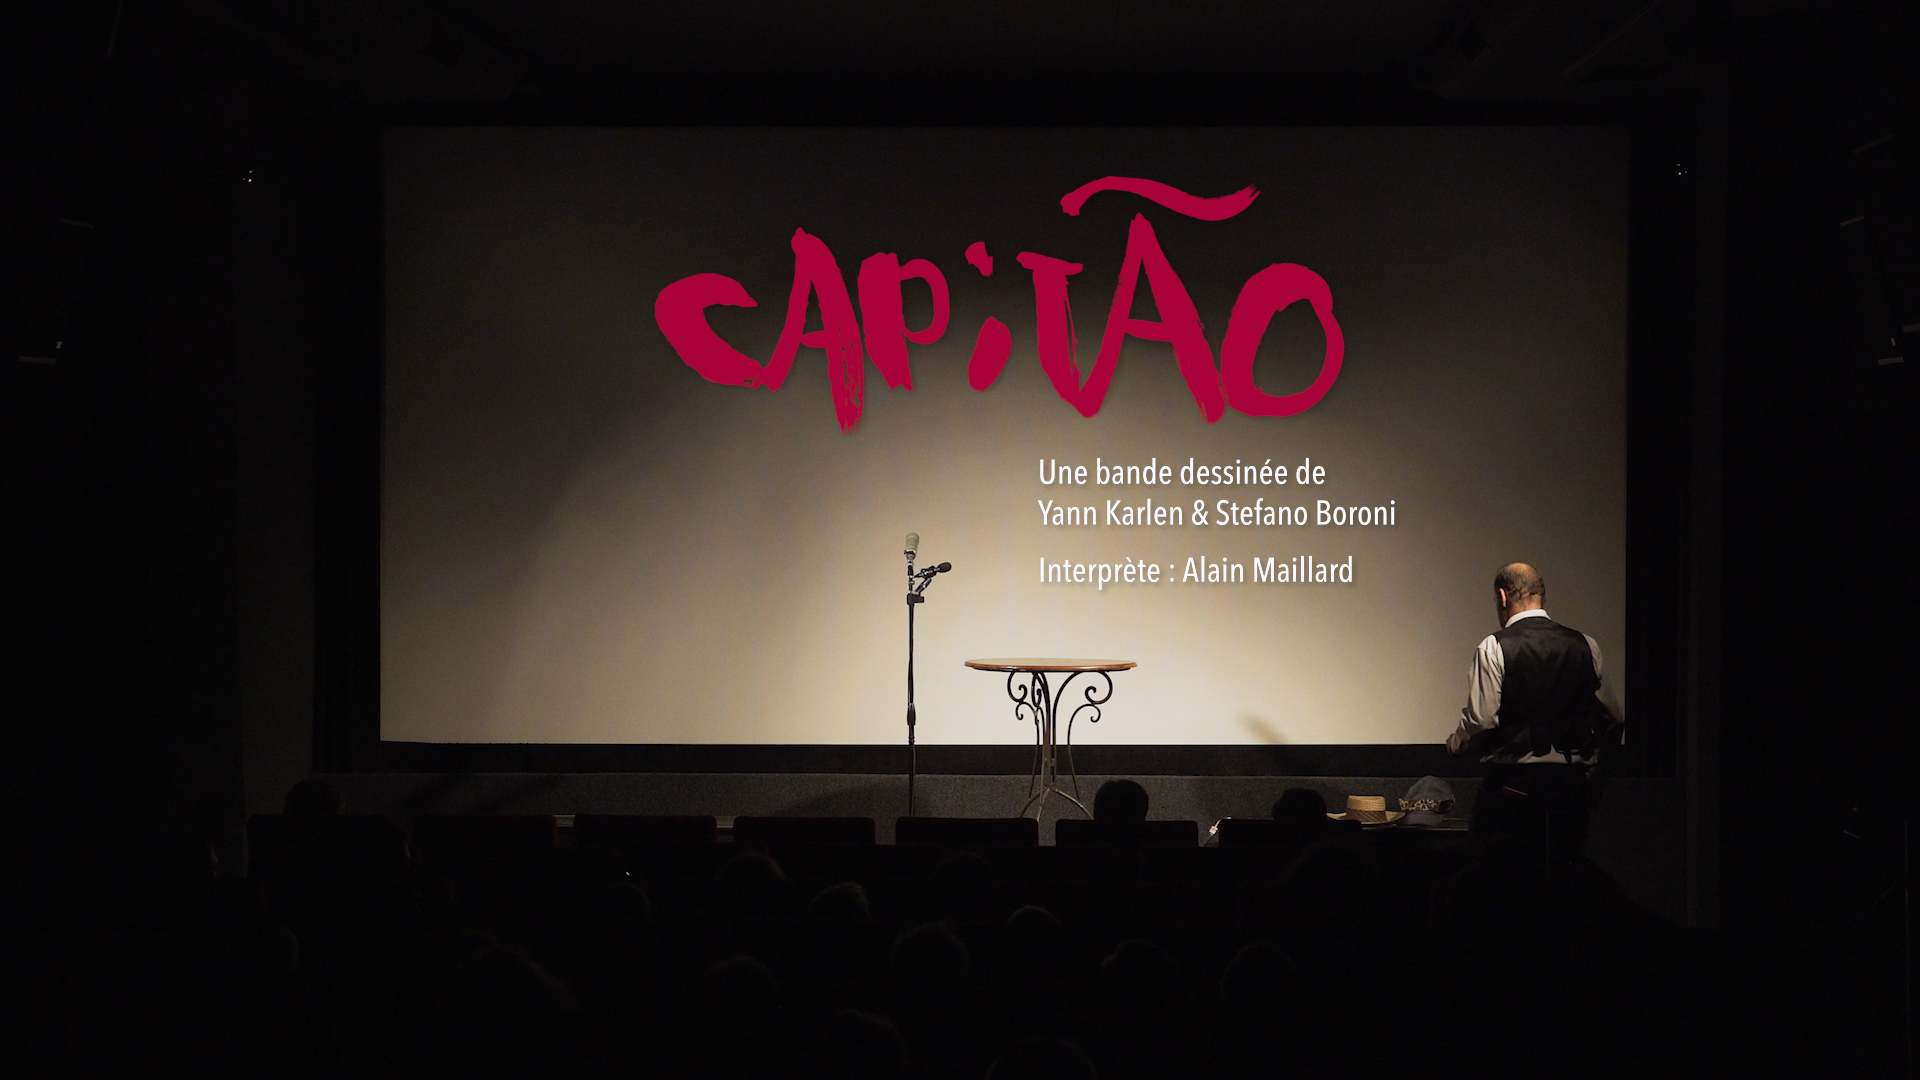 Captiao titre intro